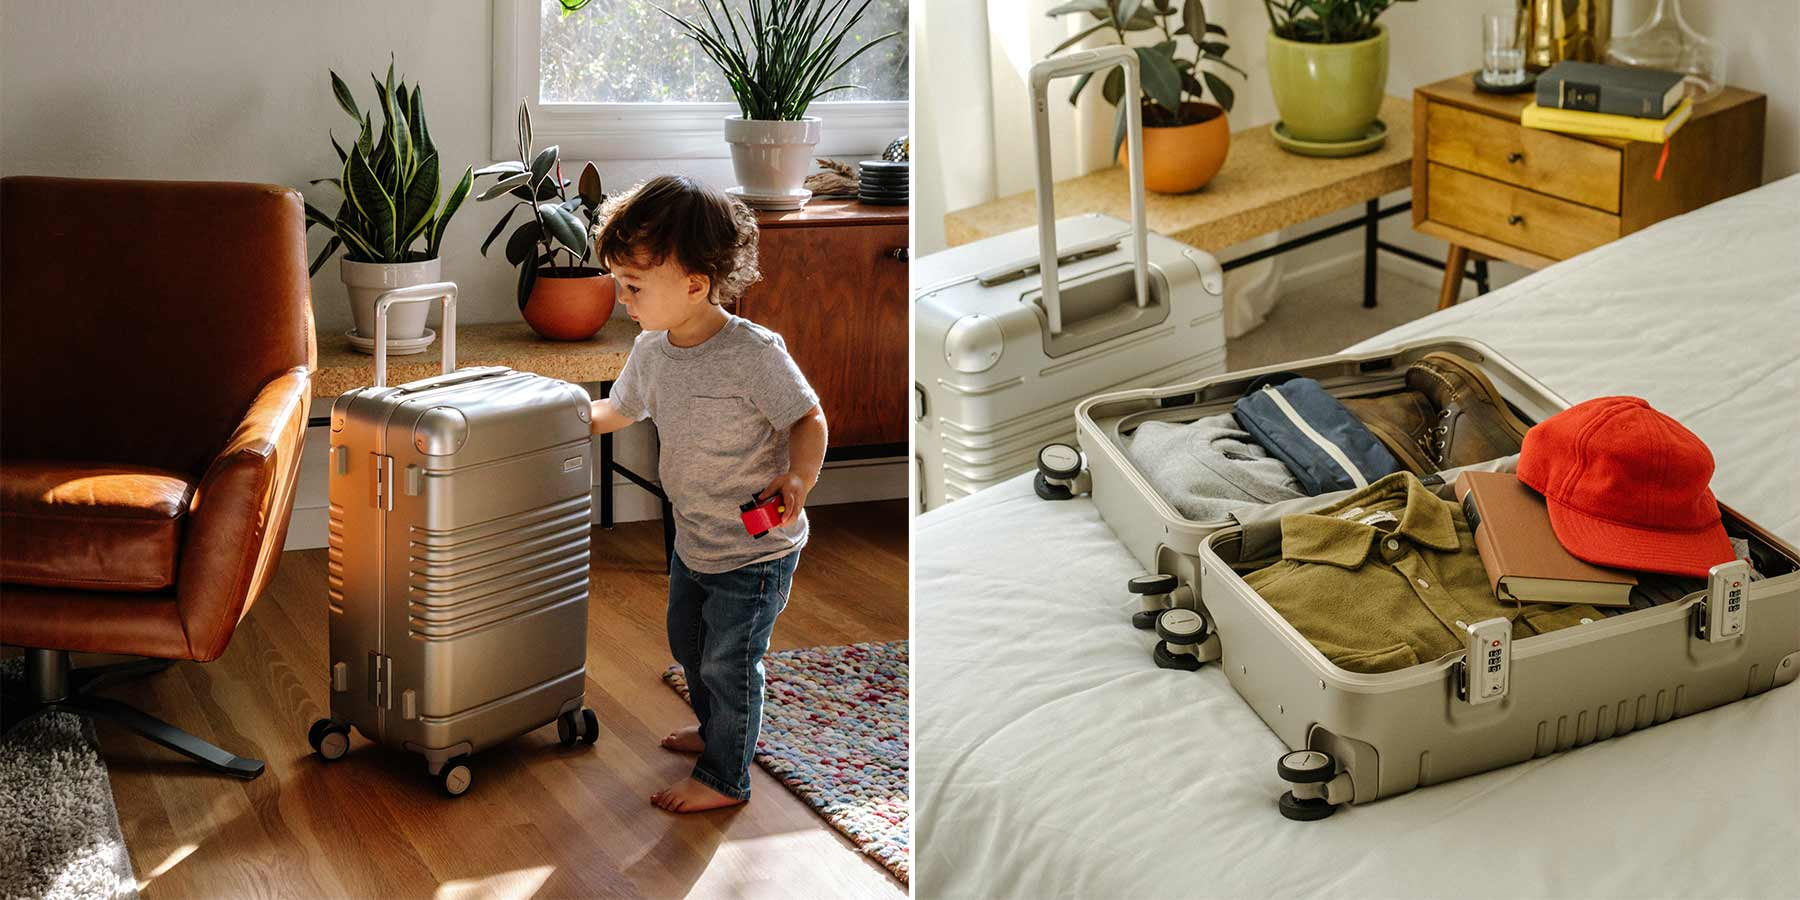 On the left side a child is playing with frame carry-on in champagne and on the right side a open frame carry-on in champagne is fully packed on bed.